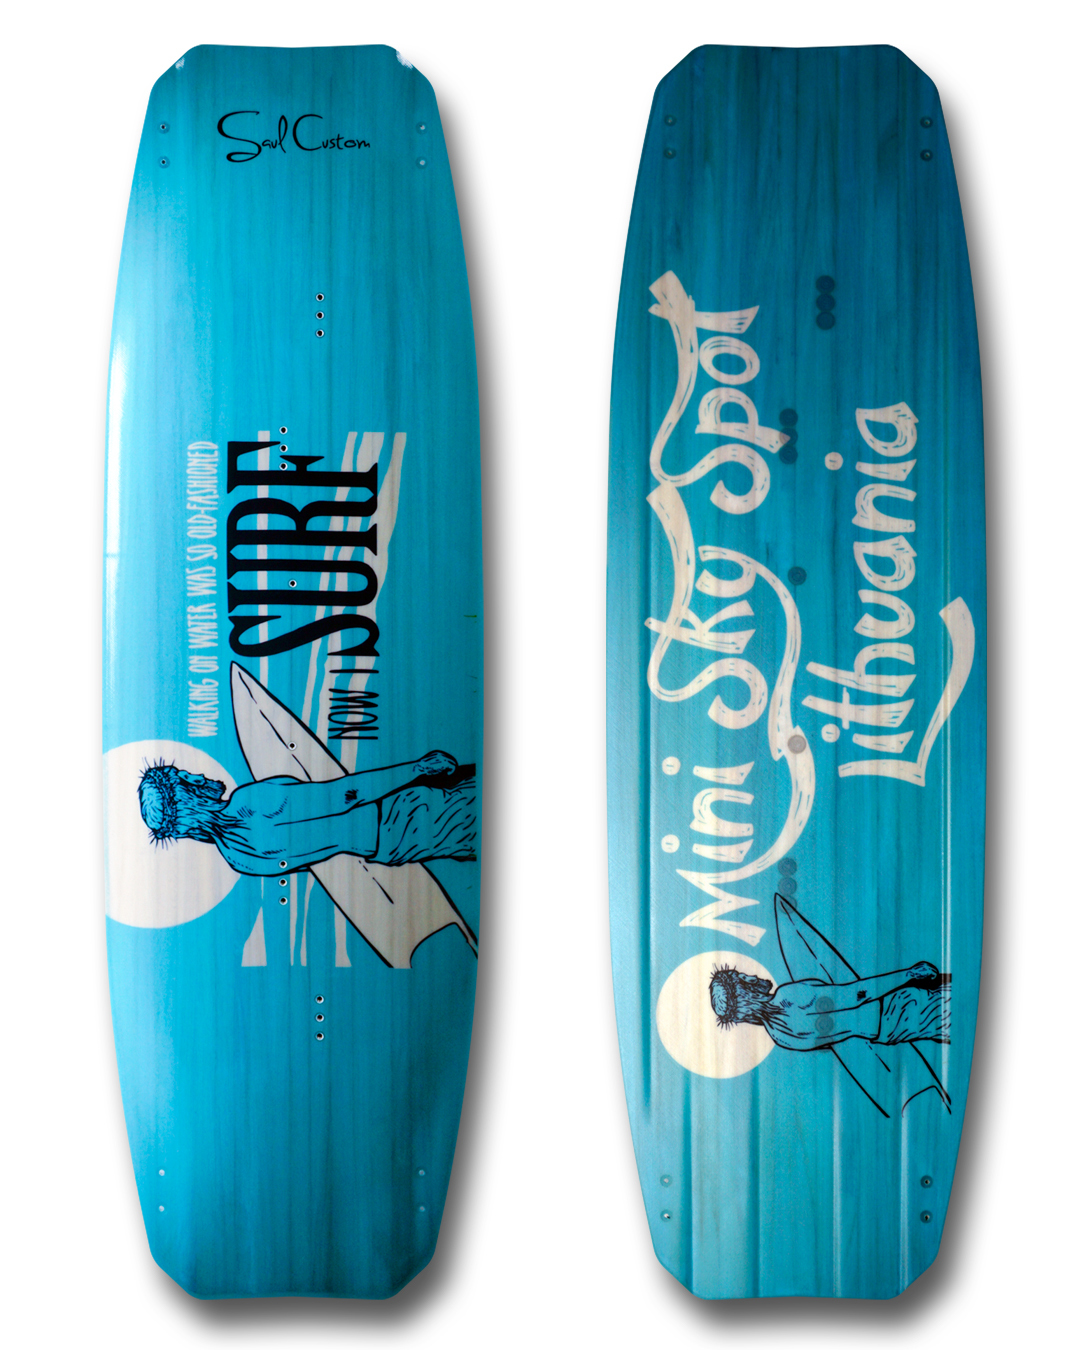 Pure 2.0 kiteboard - Vivid custom graphics - Wood core - Triaxial fiberglass construction